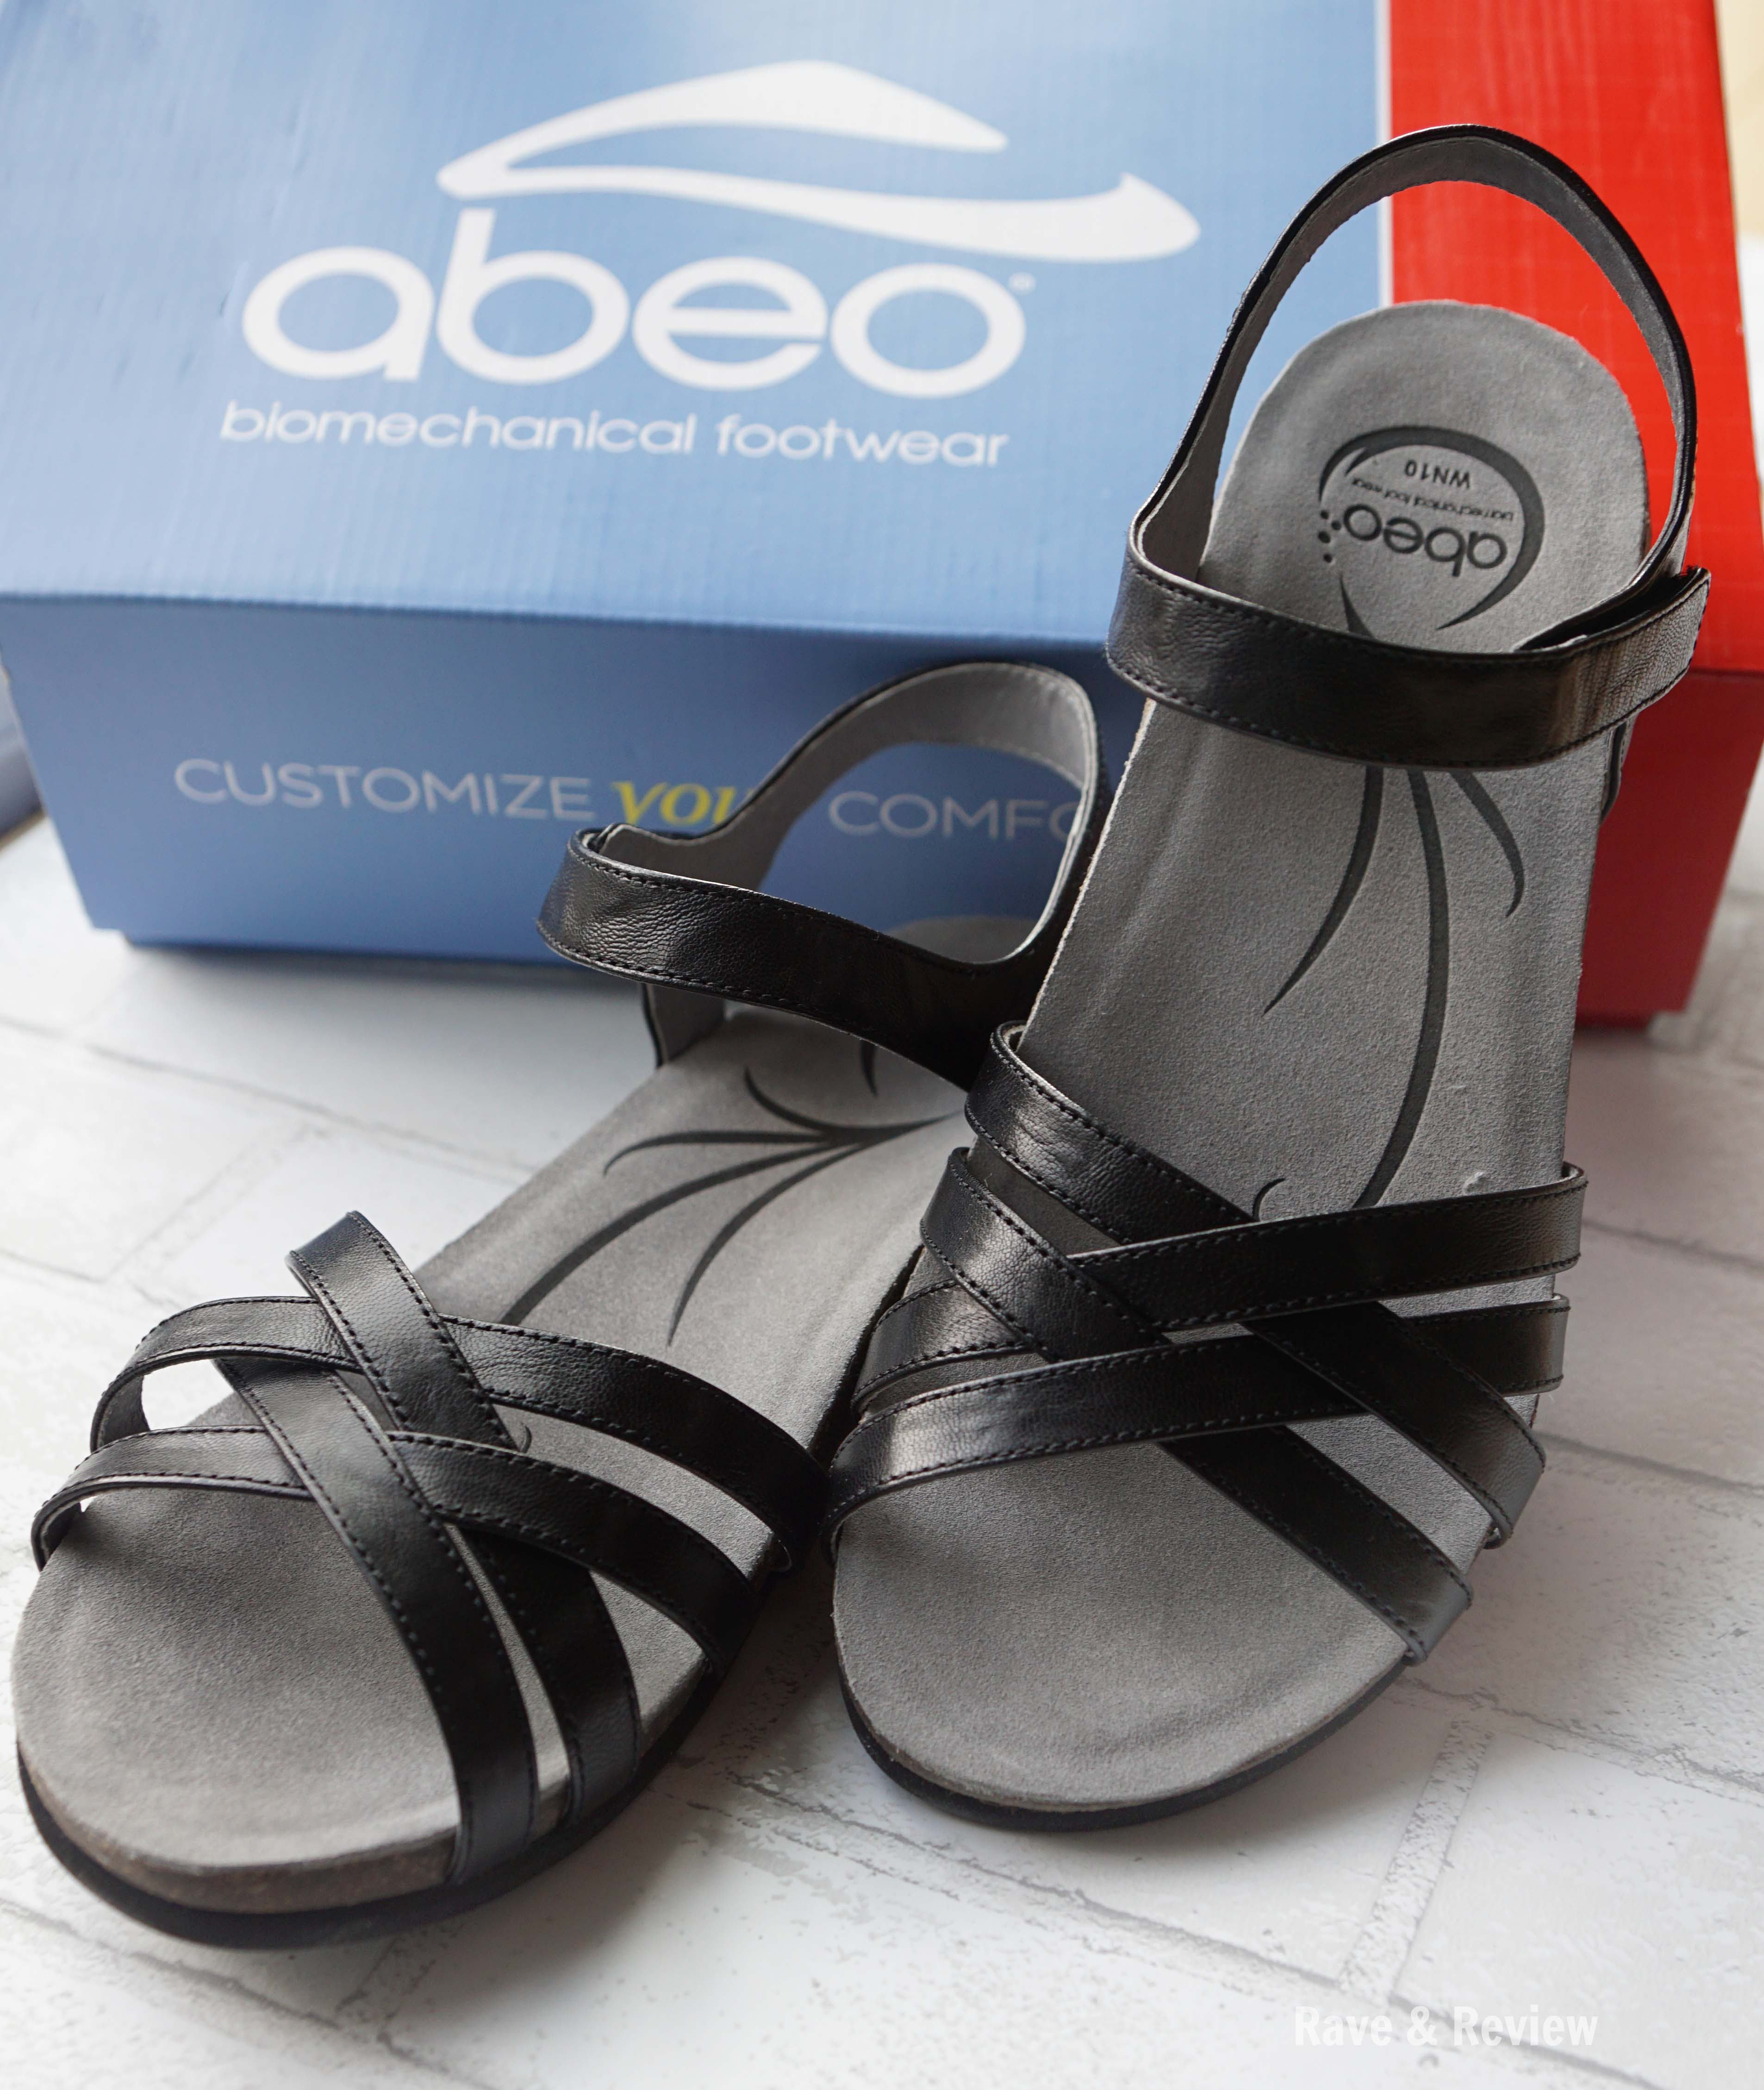 1010542668 ABEO comfortable and customized footwear